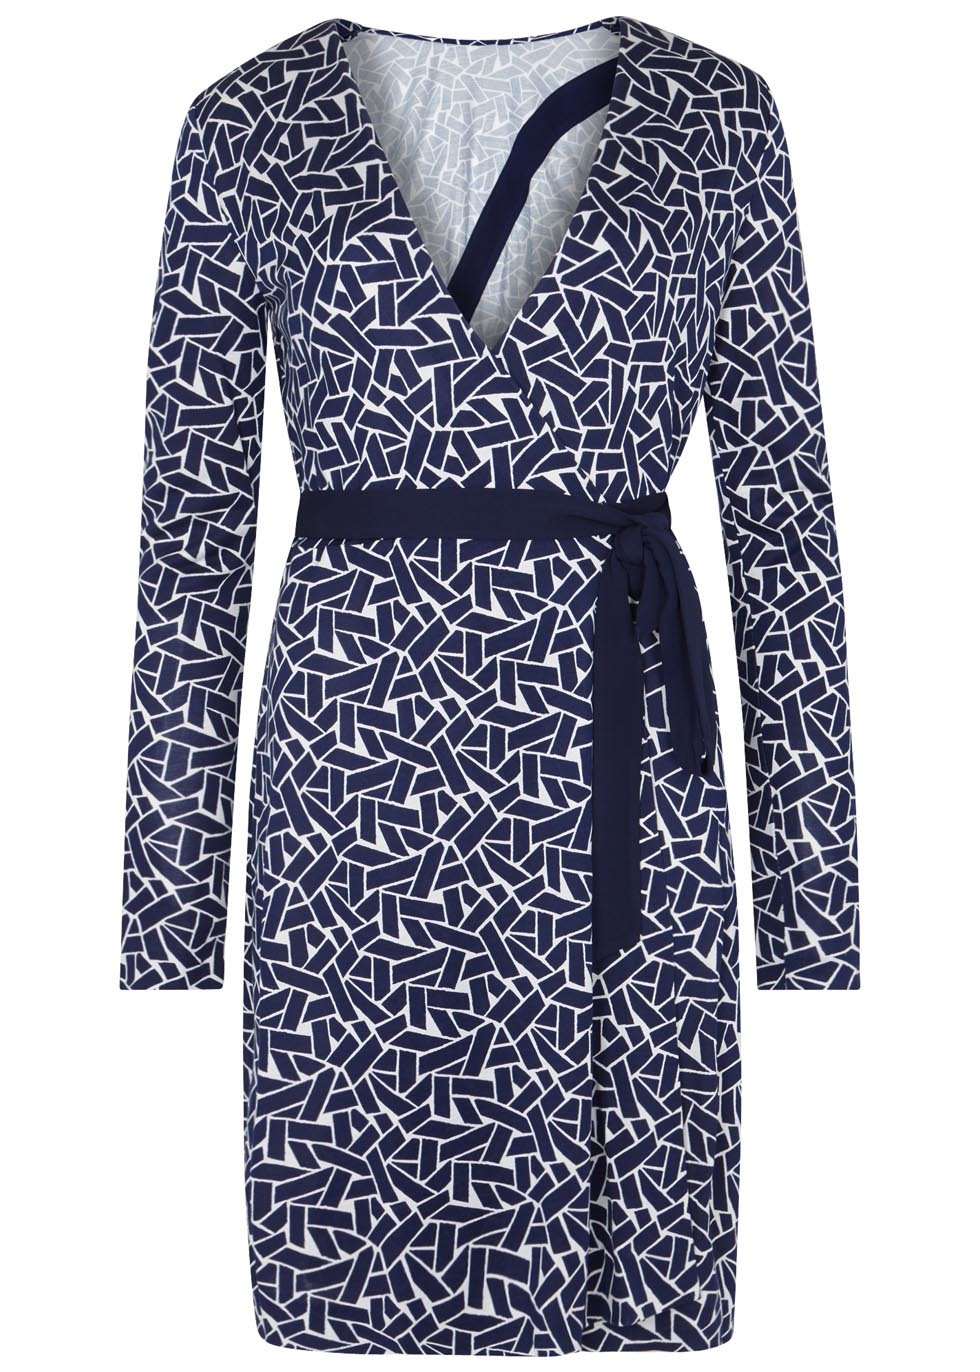 Vienna Printed Silk Jersey Wrap Dress - style: faux wrap/wrap; neckline: v-neck; waist detail: belted waist/tie at waist/drawstring; secondary colour: white; predominant colour: navy; occasions: evening; length: just above the knee; fit: body skimming; fibres: silk - 100%; sleeve length: long sleeve; sleeve style: standard; pattern type: fabric; pattern: patterned/print; texture group: jersey - stretchy/drapey; multicoloured: multicoloured; season: a/w 2016; wardrobe: event